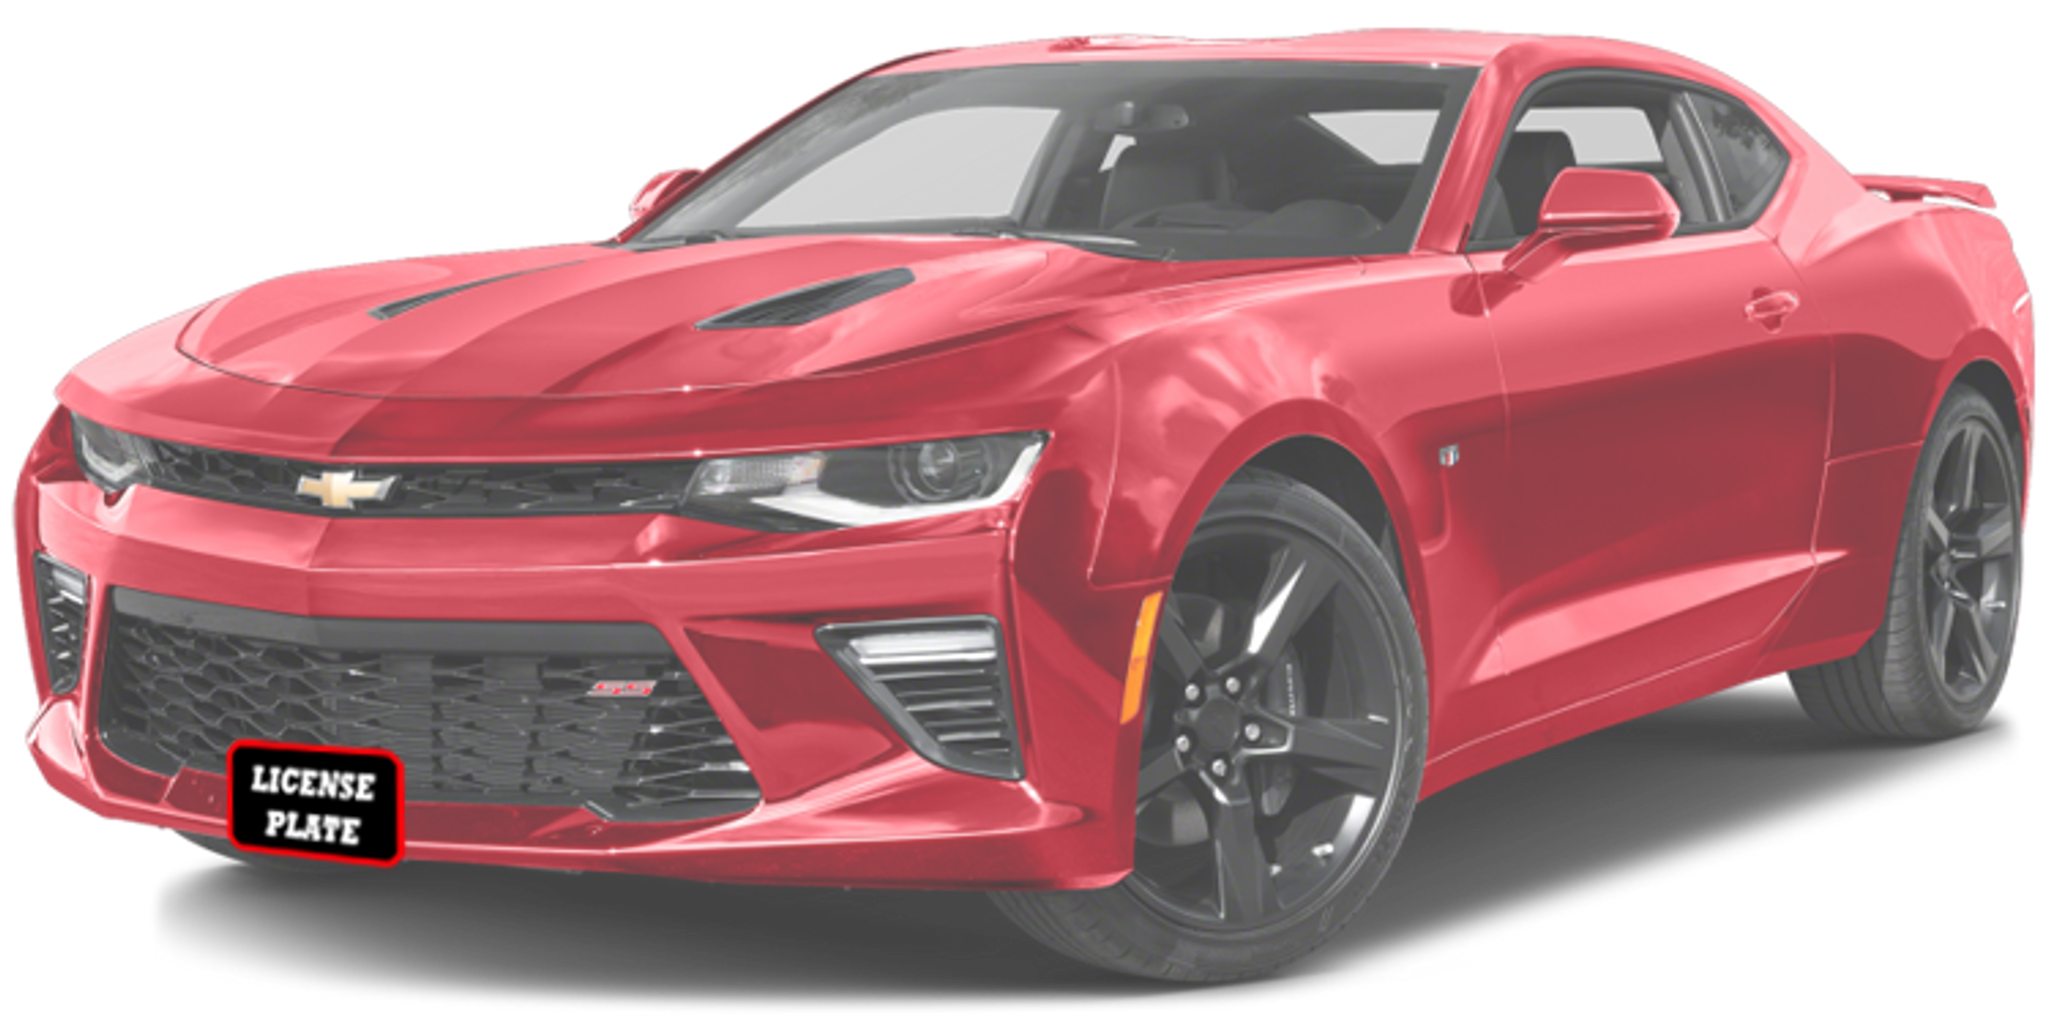 RS 2LT 1SS 2016 Chevrolet Camaro 1LT 2SS Sto-N-Sho Removable Take Off Front License Plate Frame Bracket by StonSho